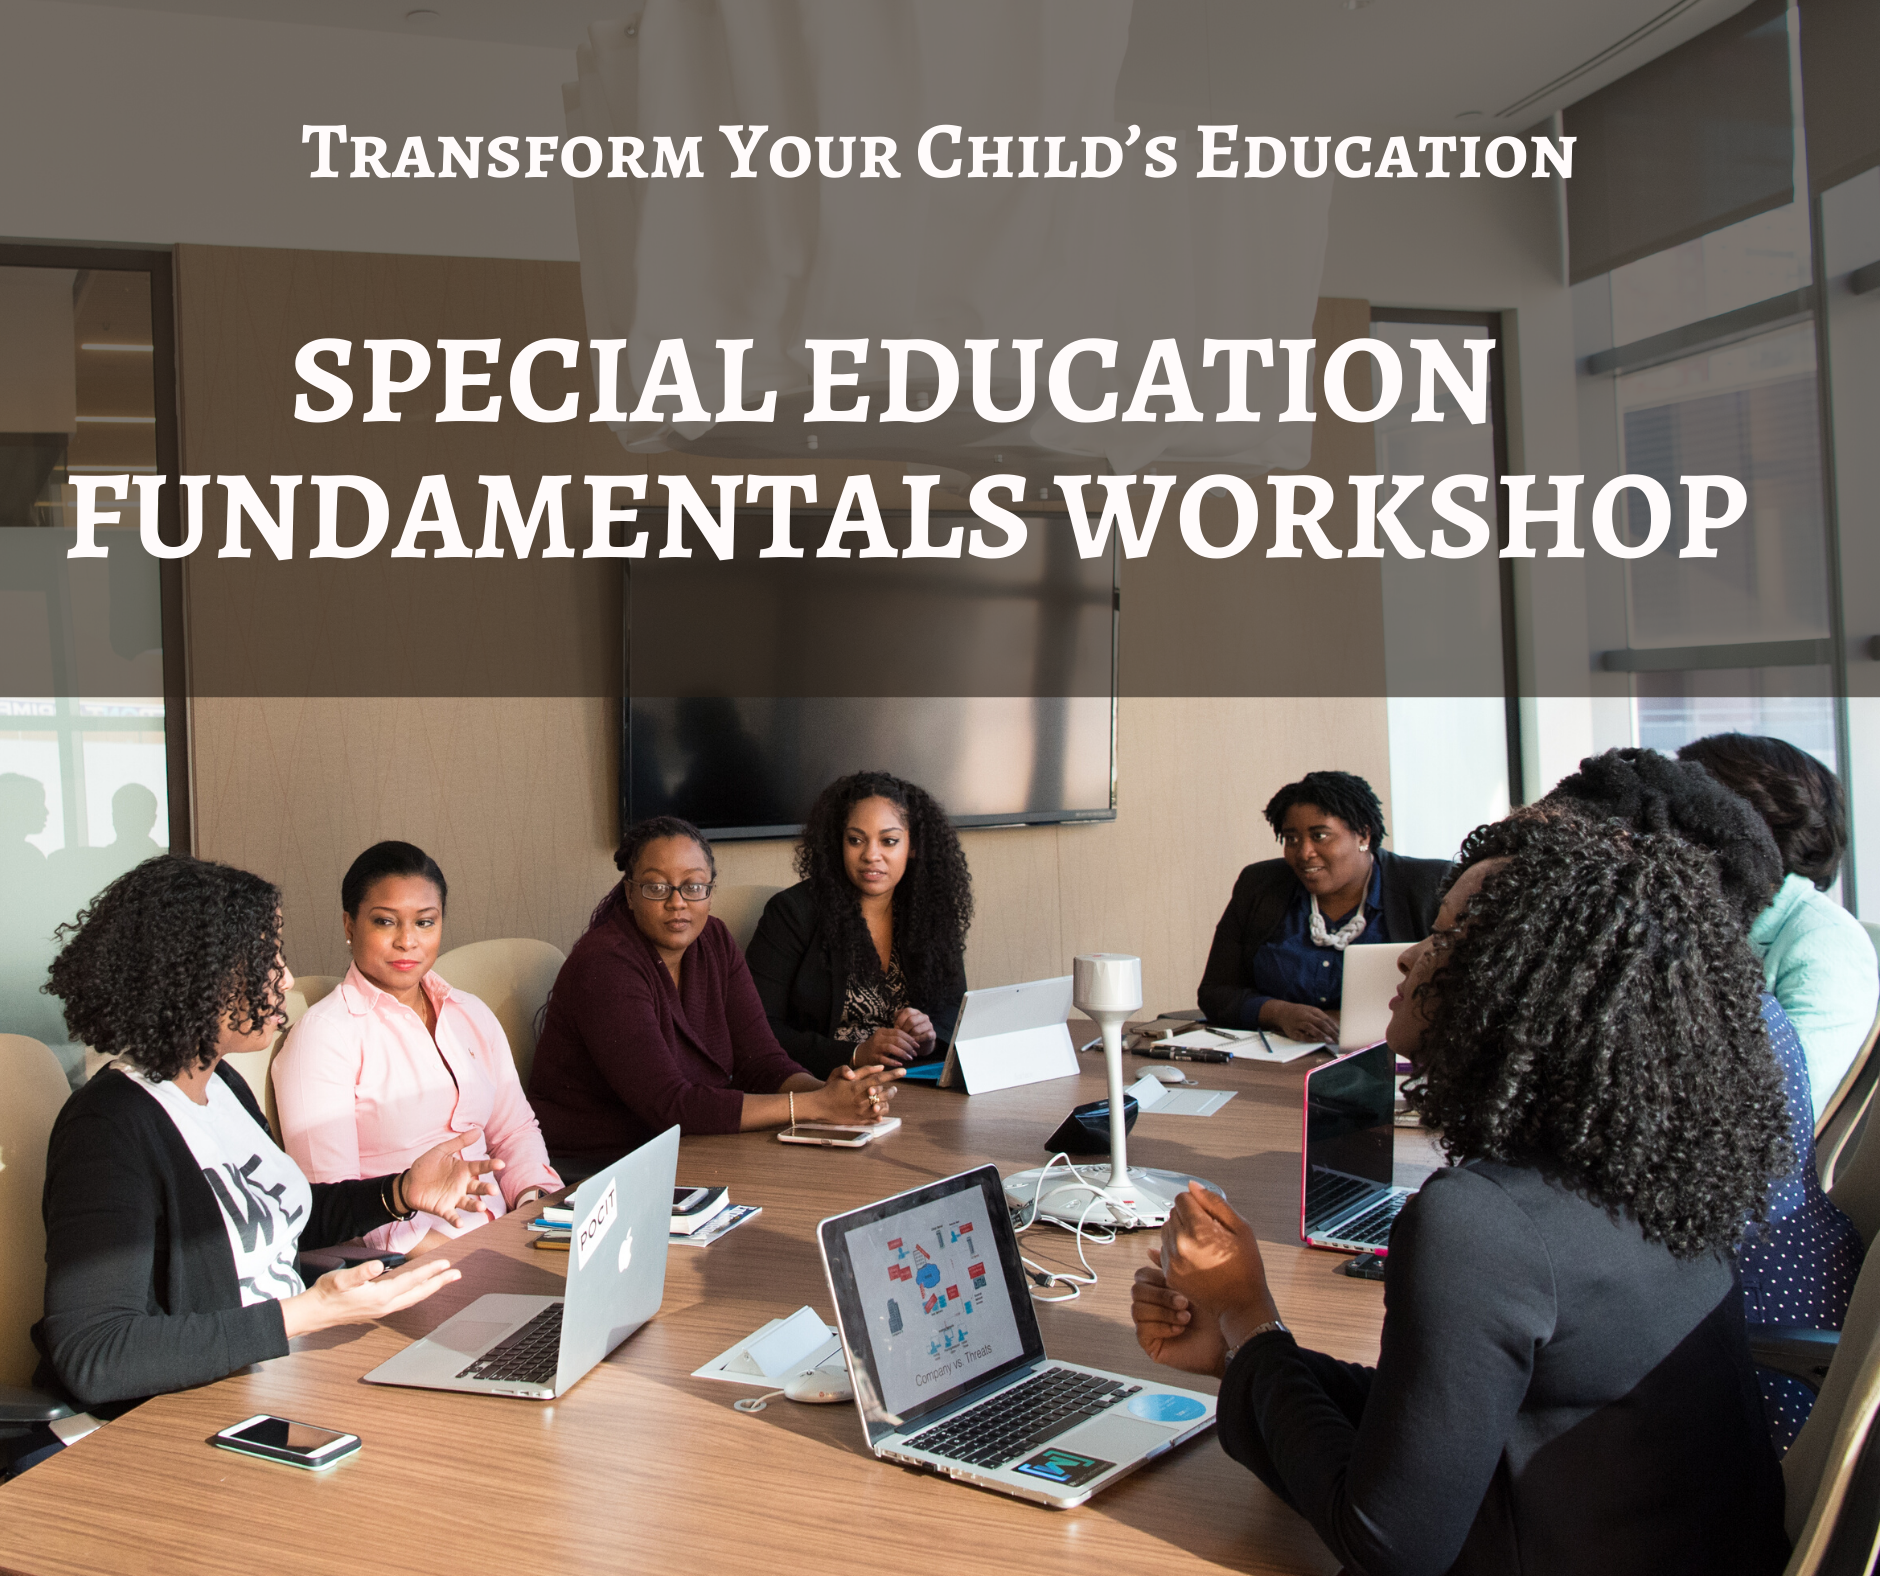 Special Education Fundamentals Workshop